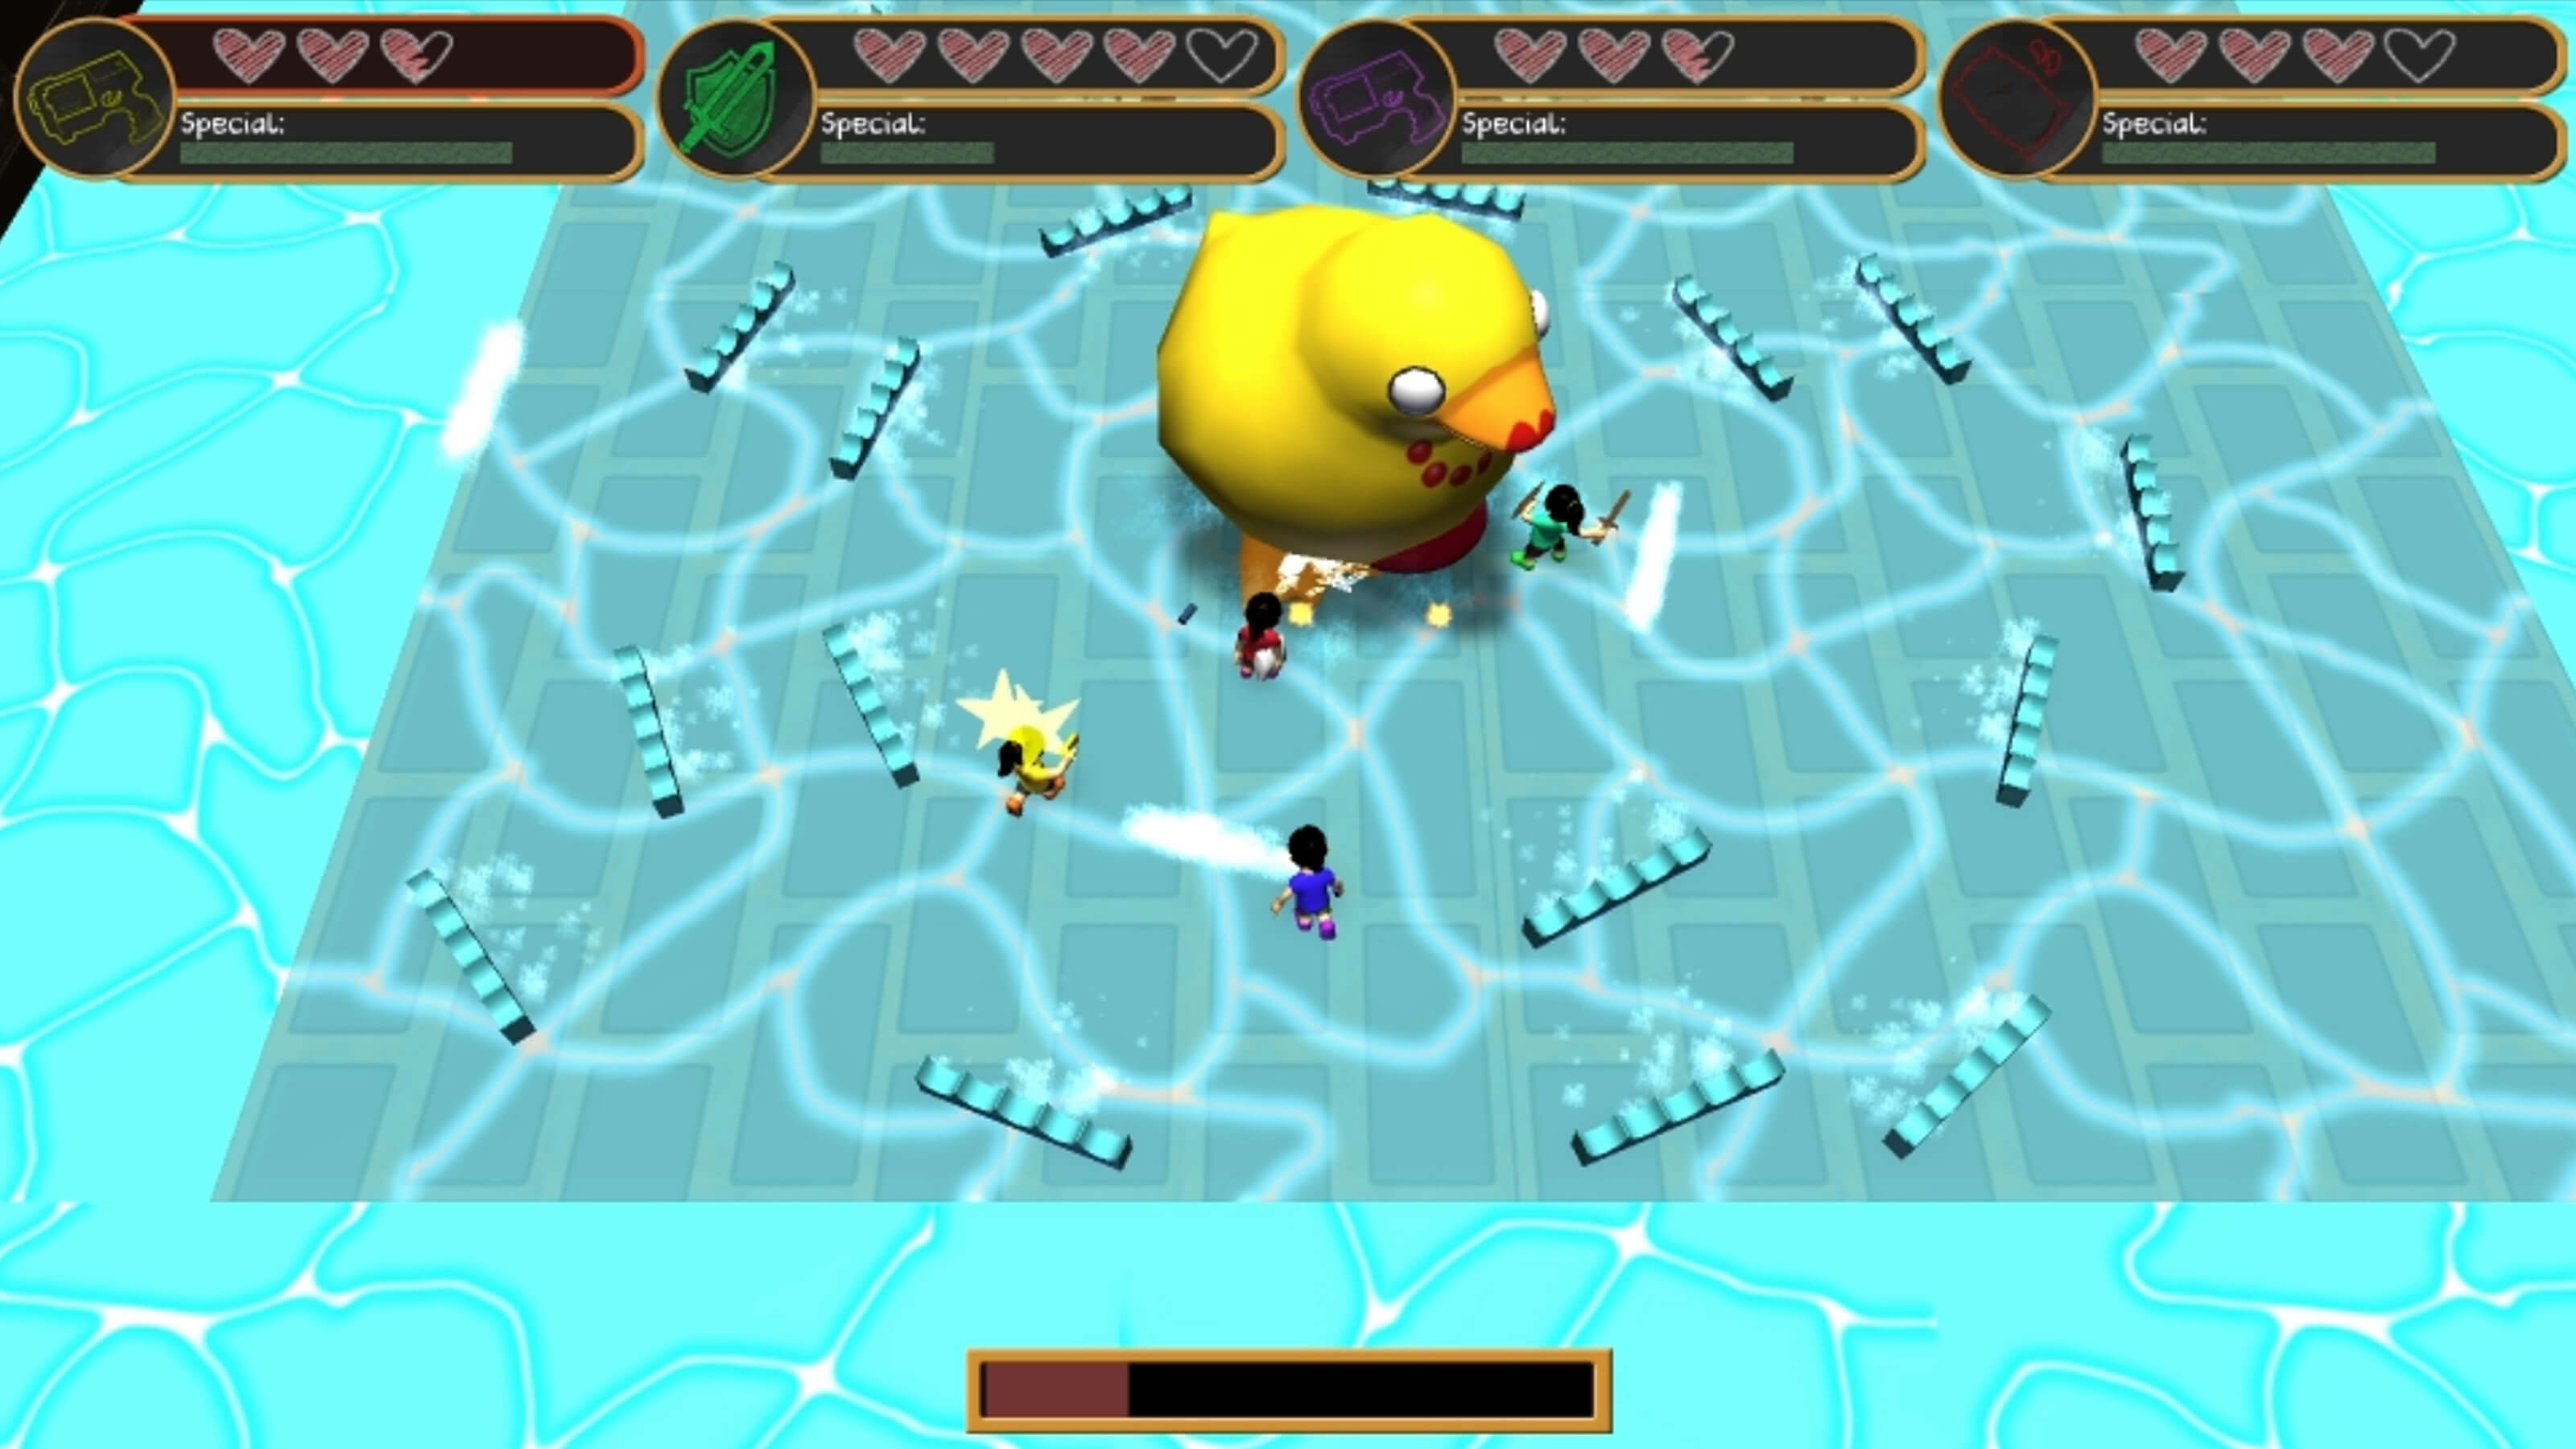 Four young girls attack a giant rubber duck in a pool of water.